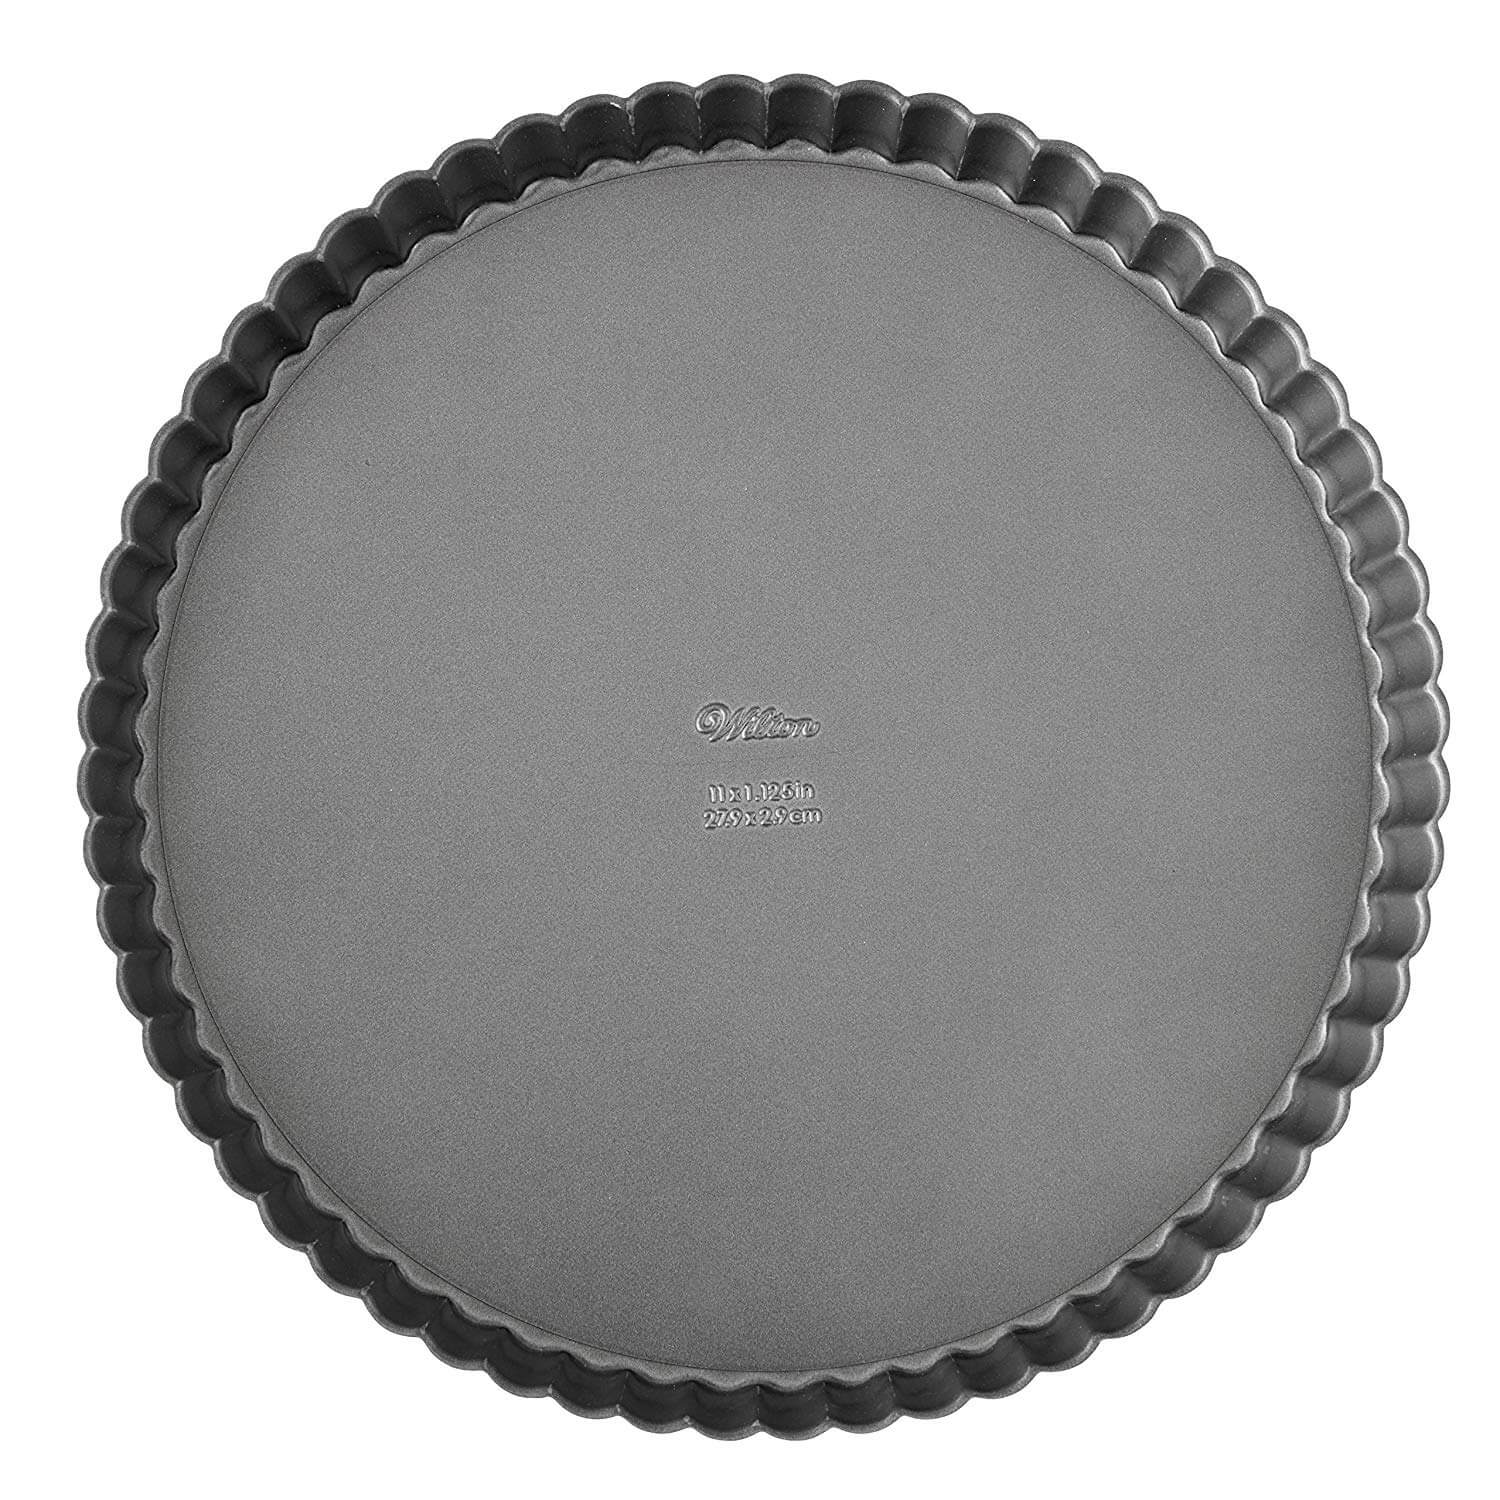 Wilton Excelle Elite Non-Stick Tart and Quiche Pan